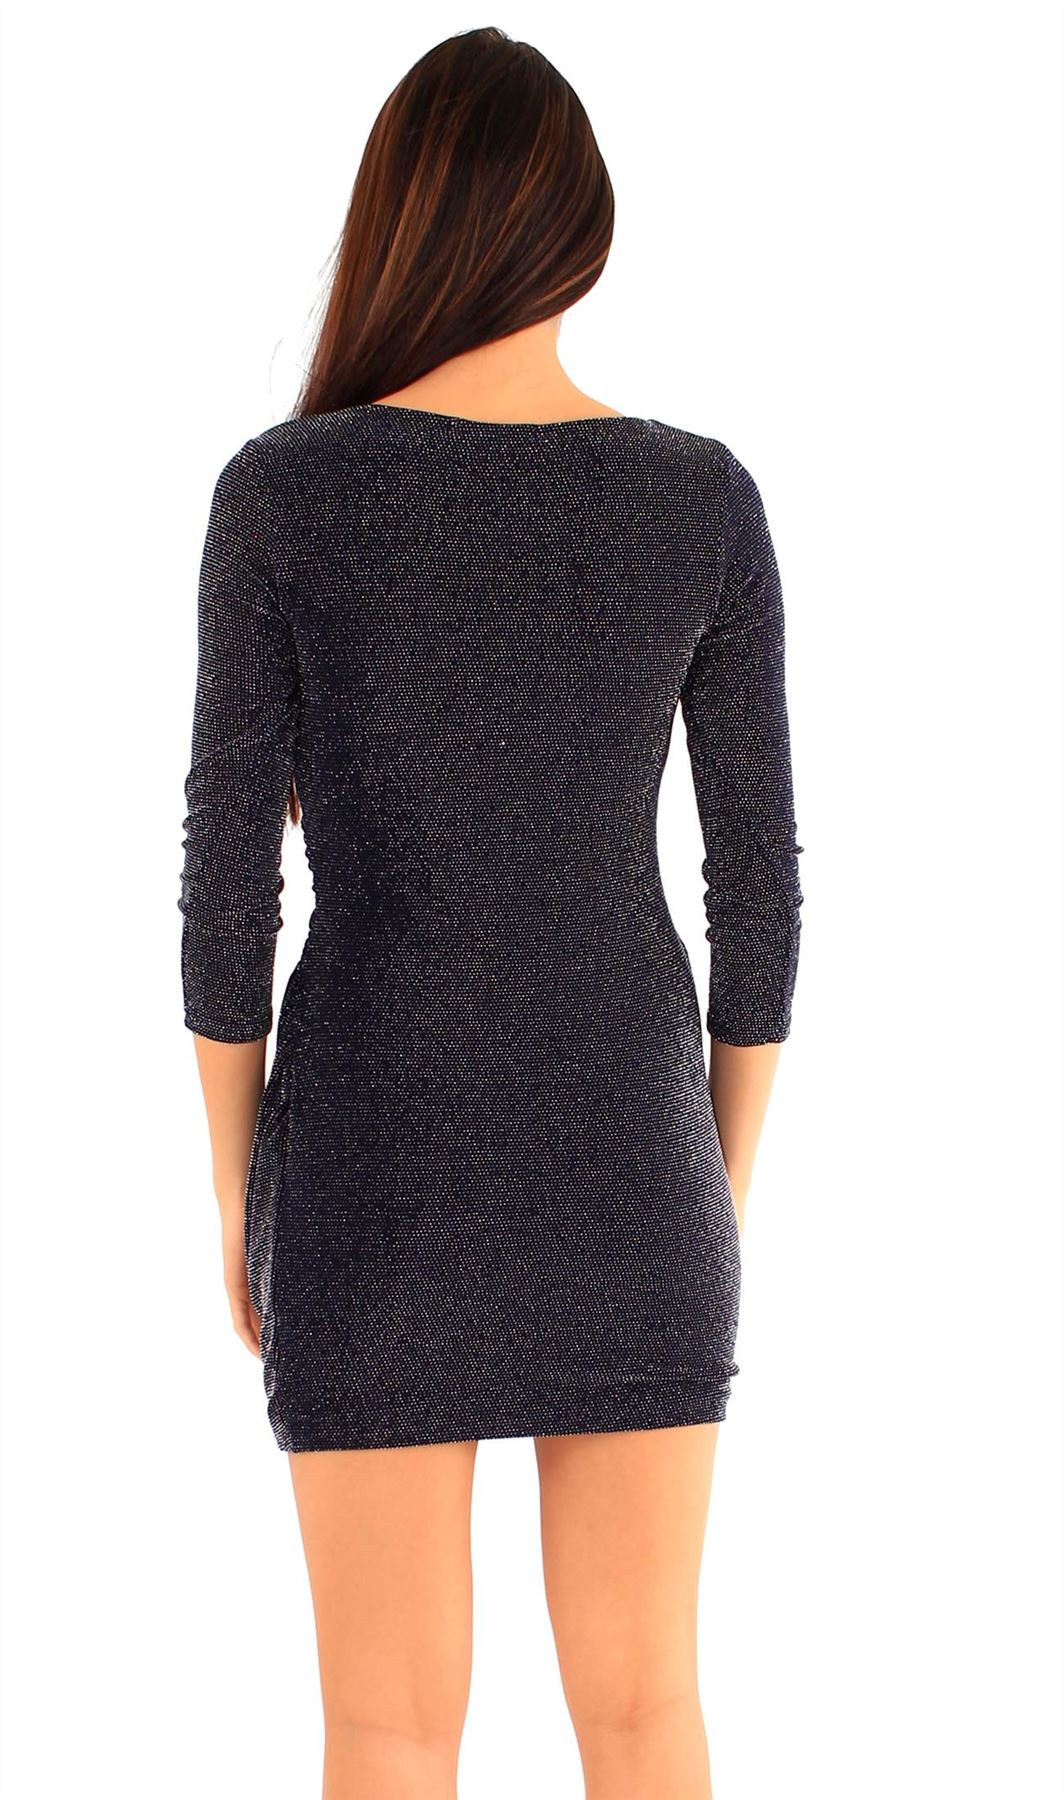 New Ladies Wrap Over Glitter ¾ Sleeve mini Going out Dress 8-14